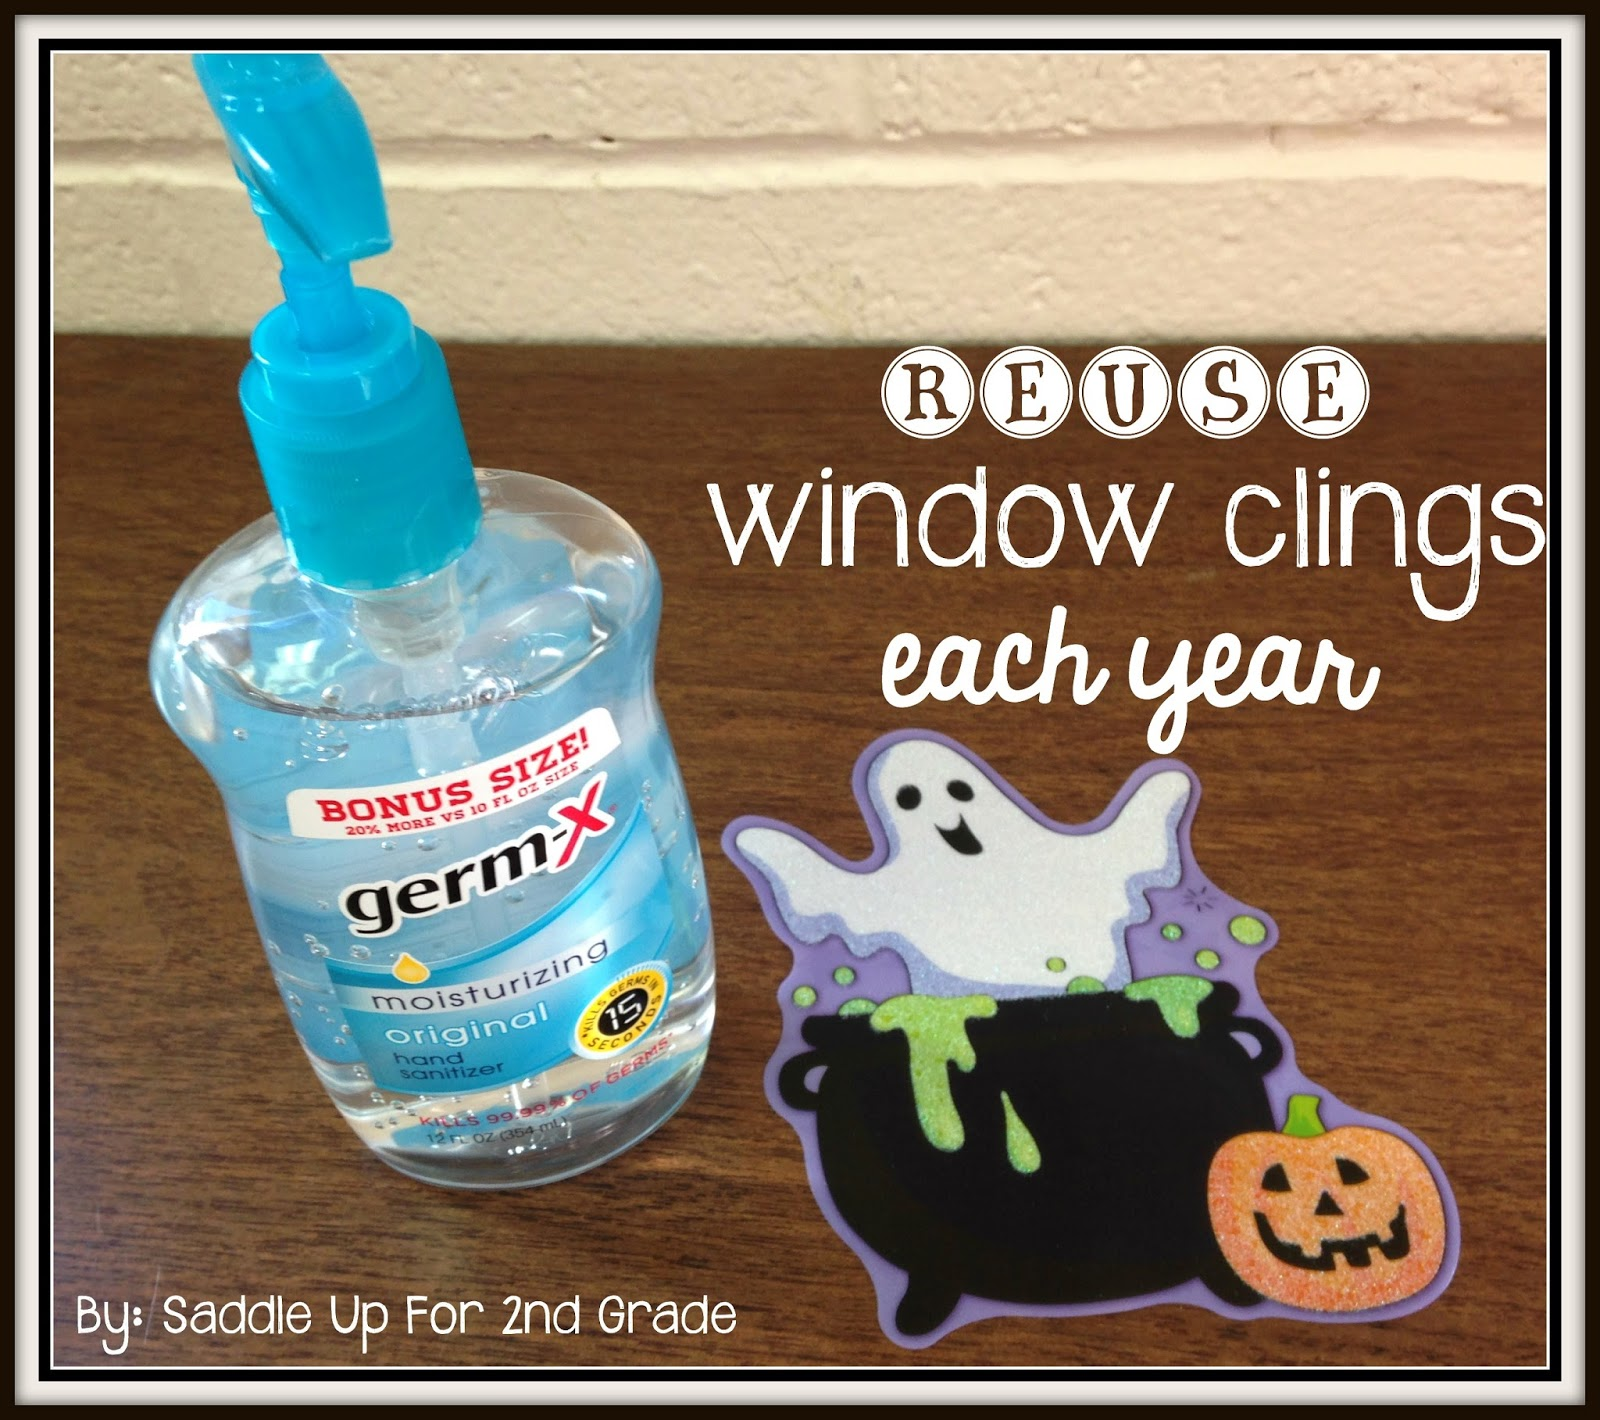 how to reuse window clings by saddle up for 2nd grade - Window Clings